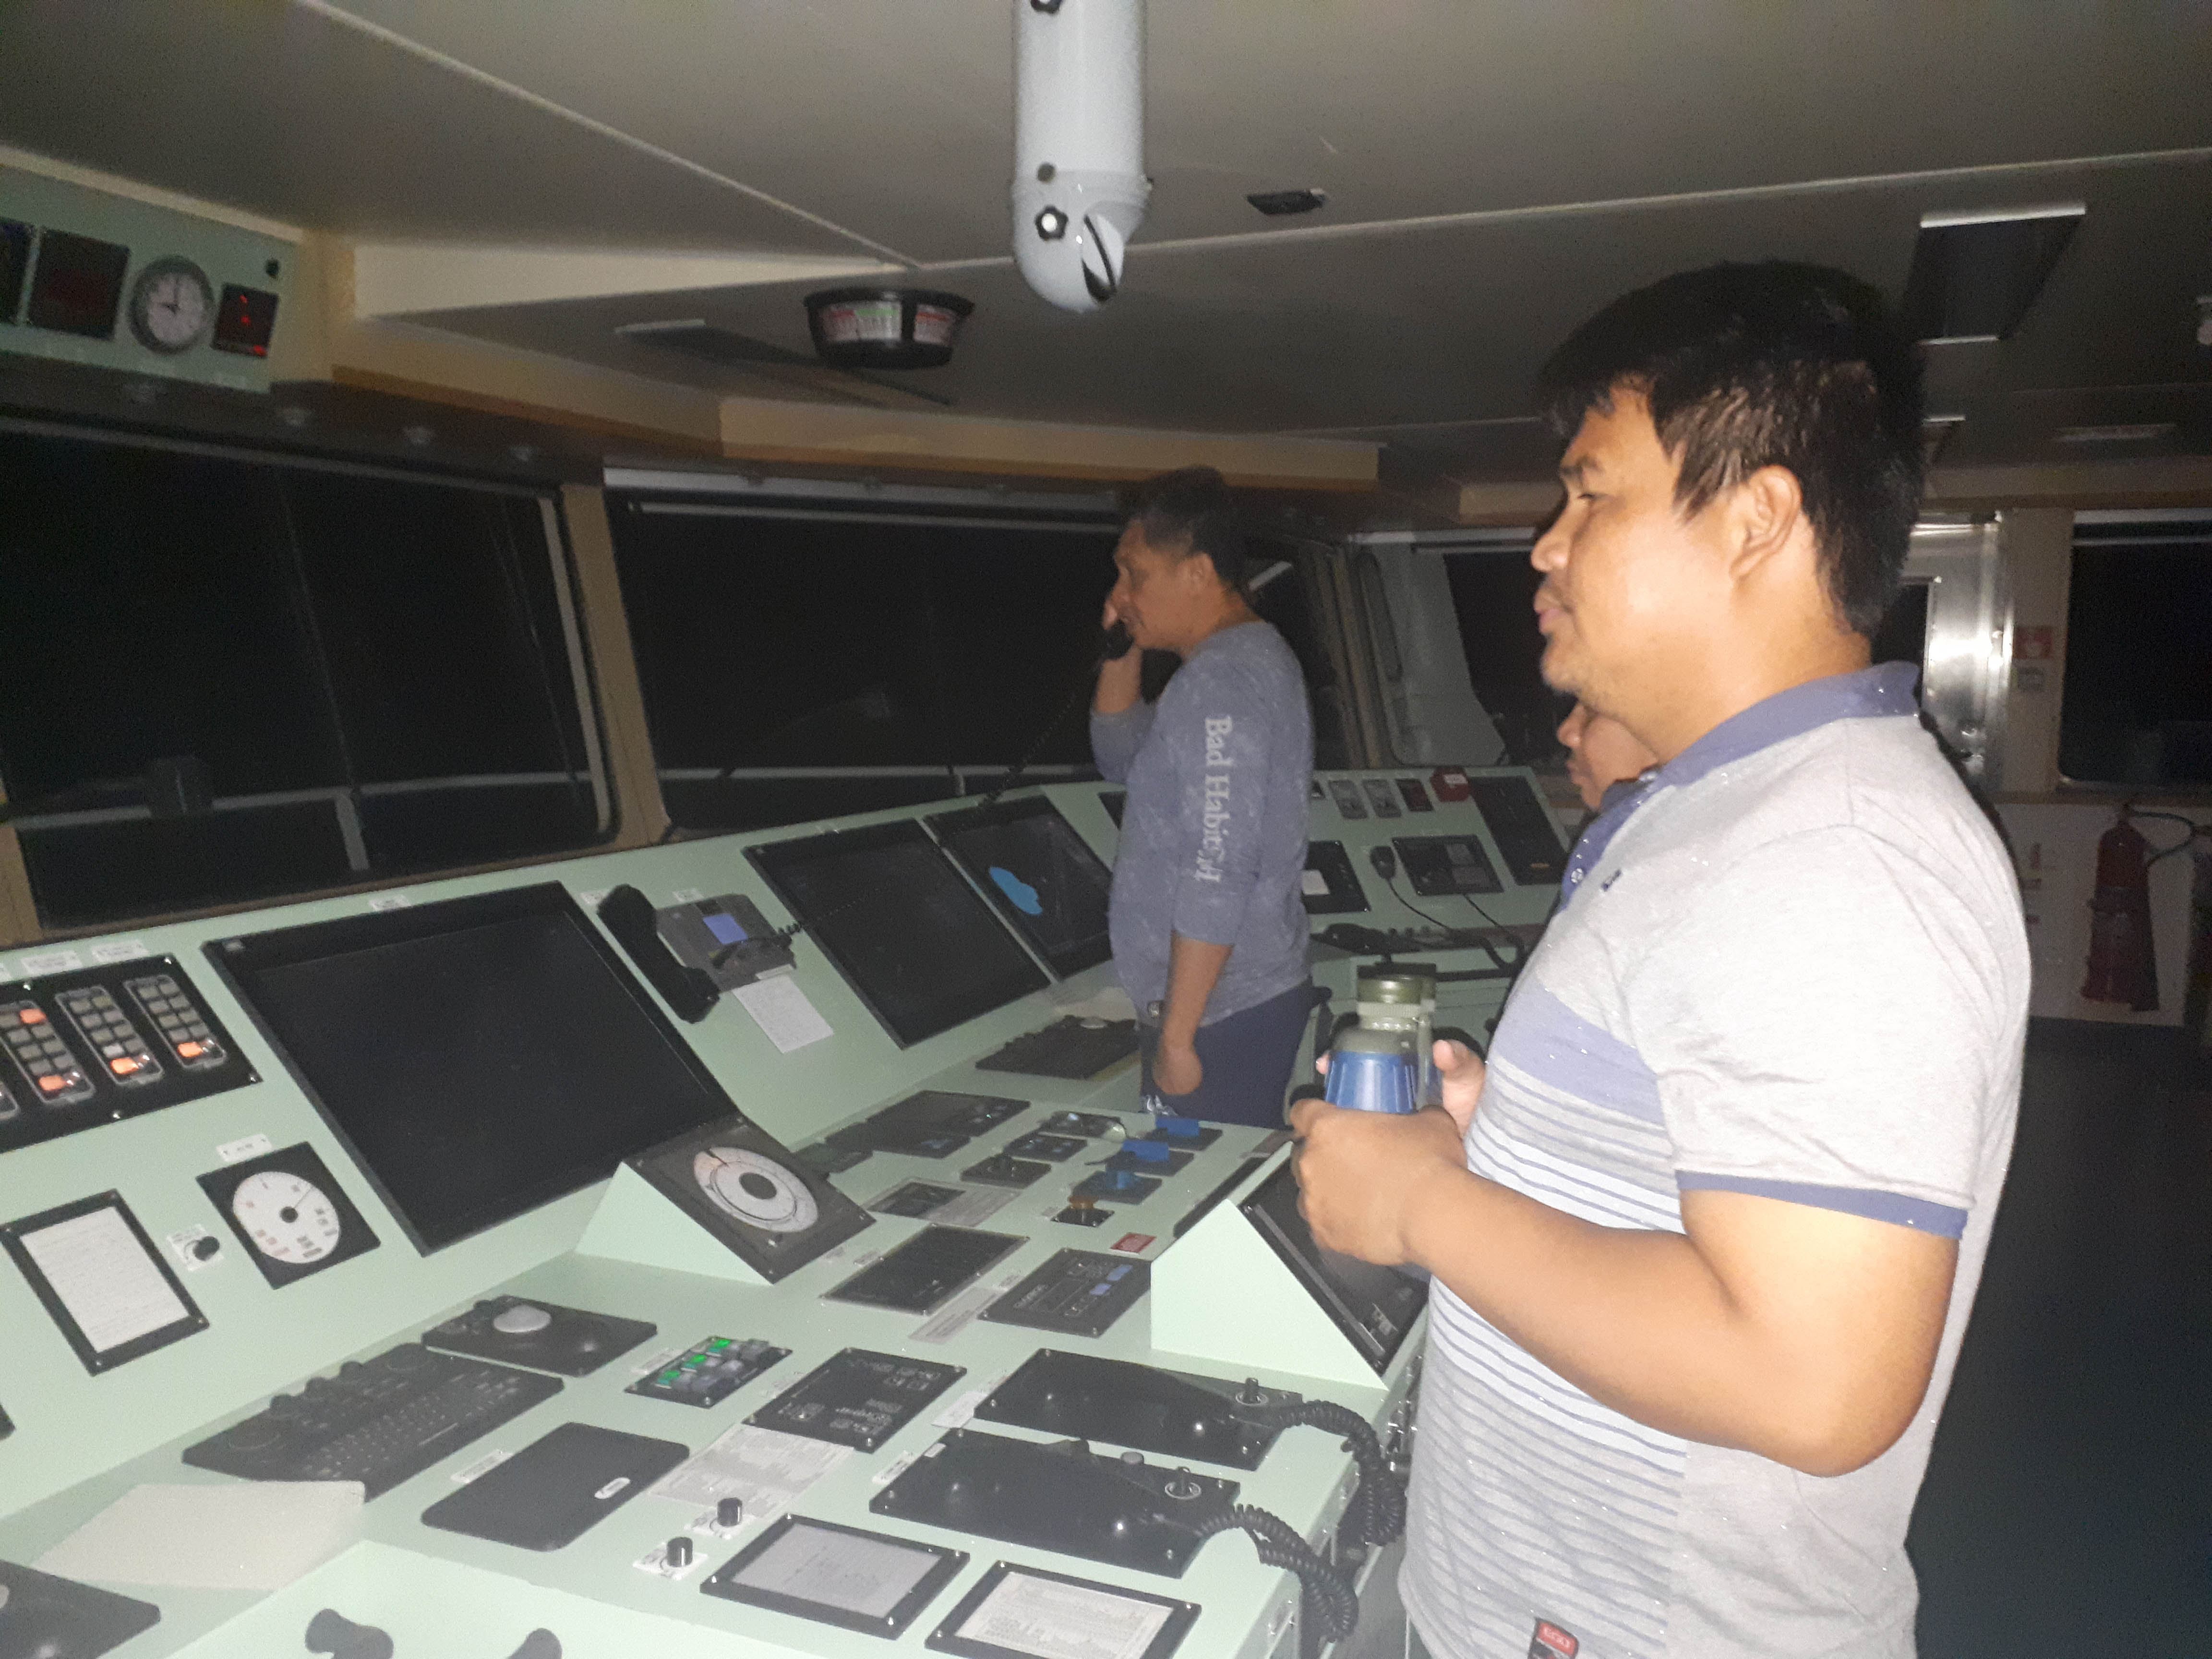 FILIPINO CREW. Ship captain Manolo Ebora (left) speaks to the crew of a 'Chinese warship' on the radio as his crew of fellow Filipinos steer the international oil tanker Green Aura near Scarborough Shoal in the West Philippine Sea on September 30, 2019. Photo courtesy of Captain Manolo Ebora